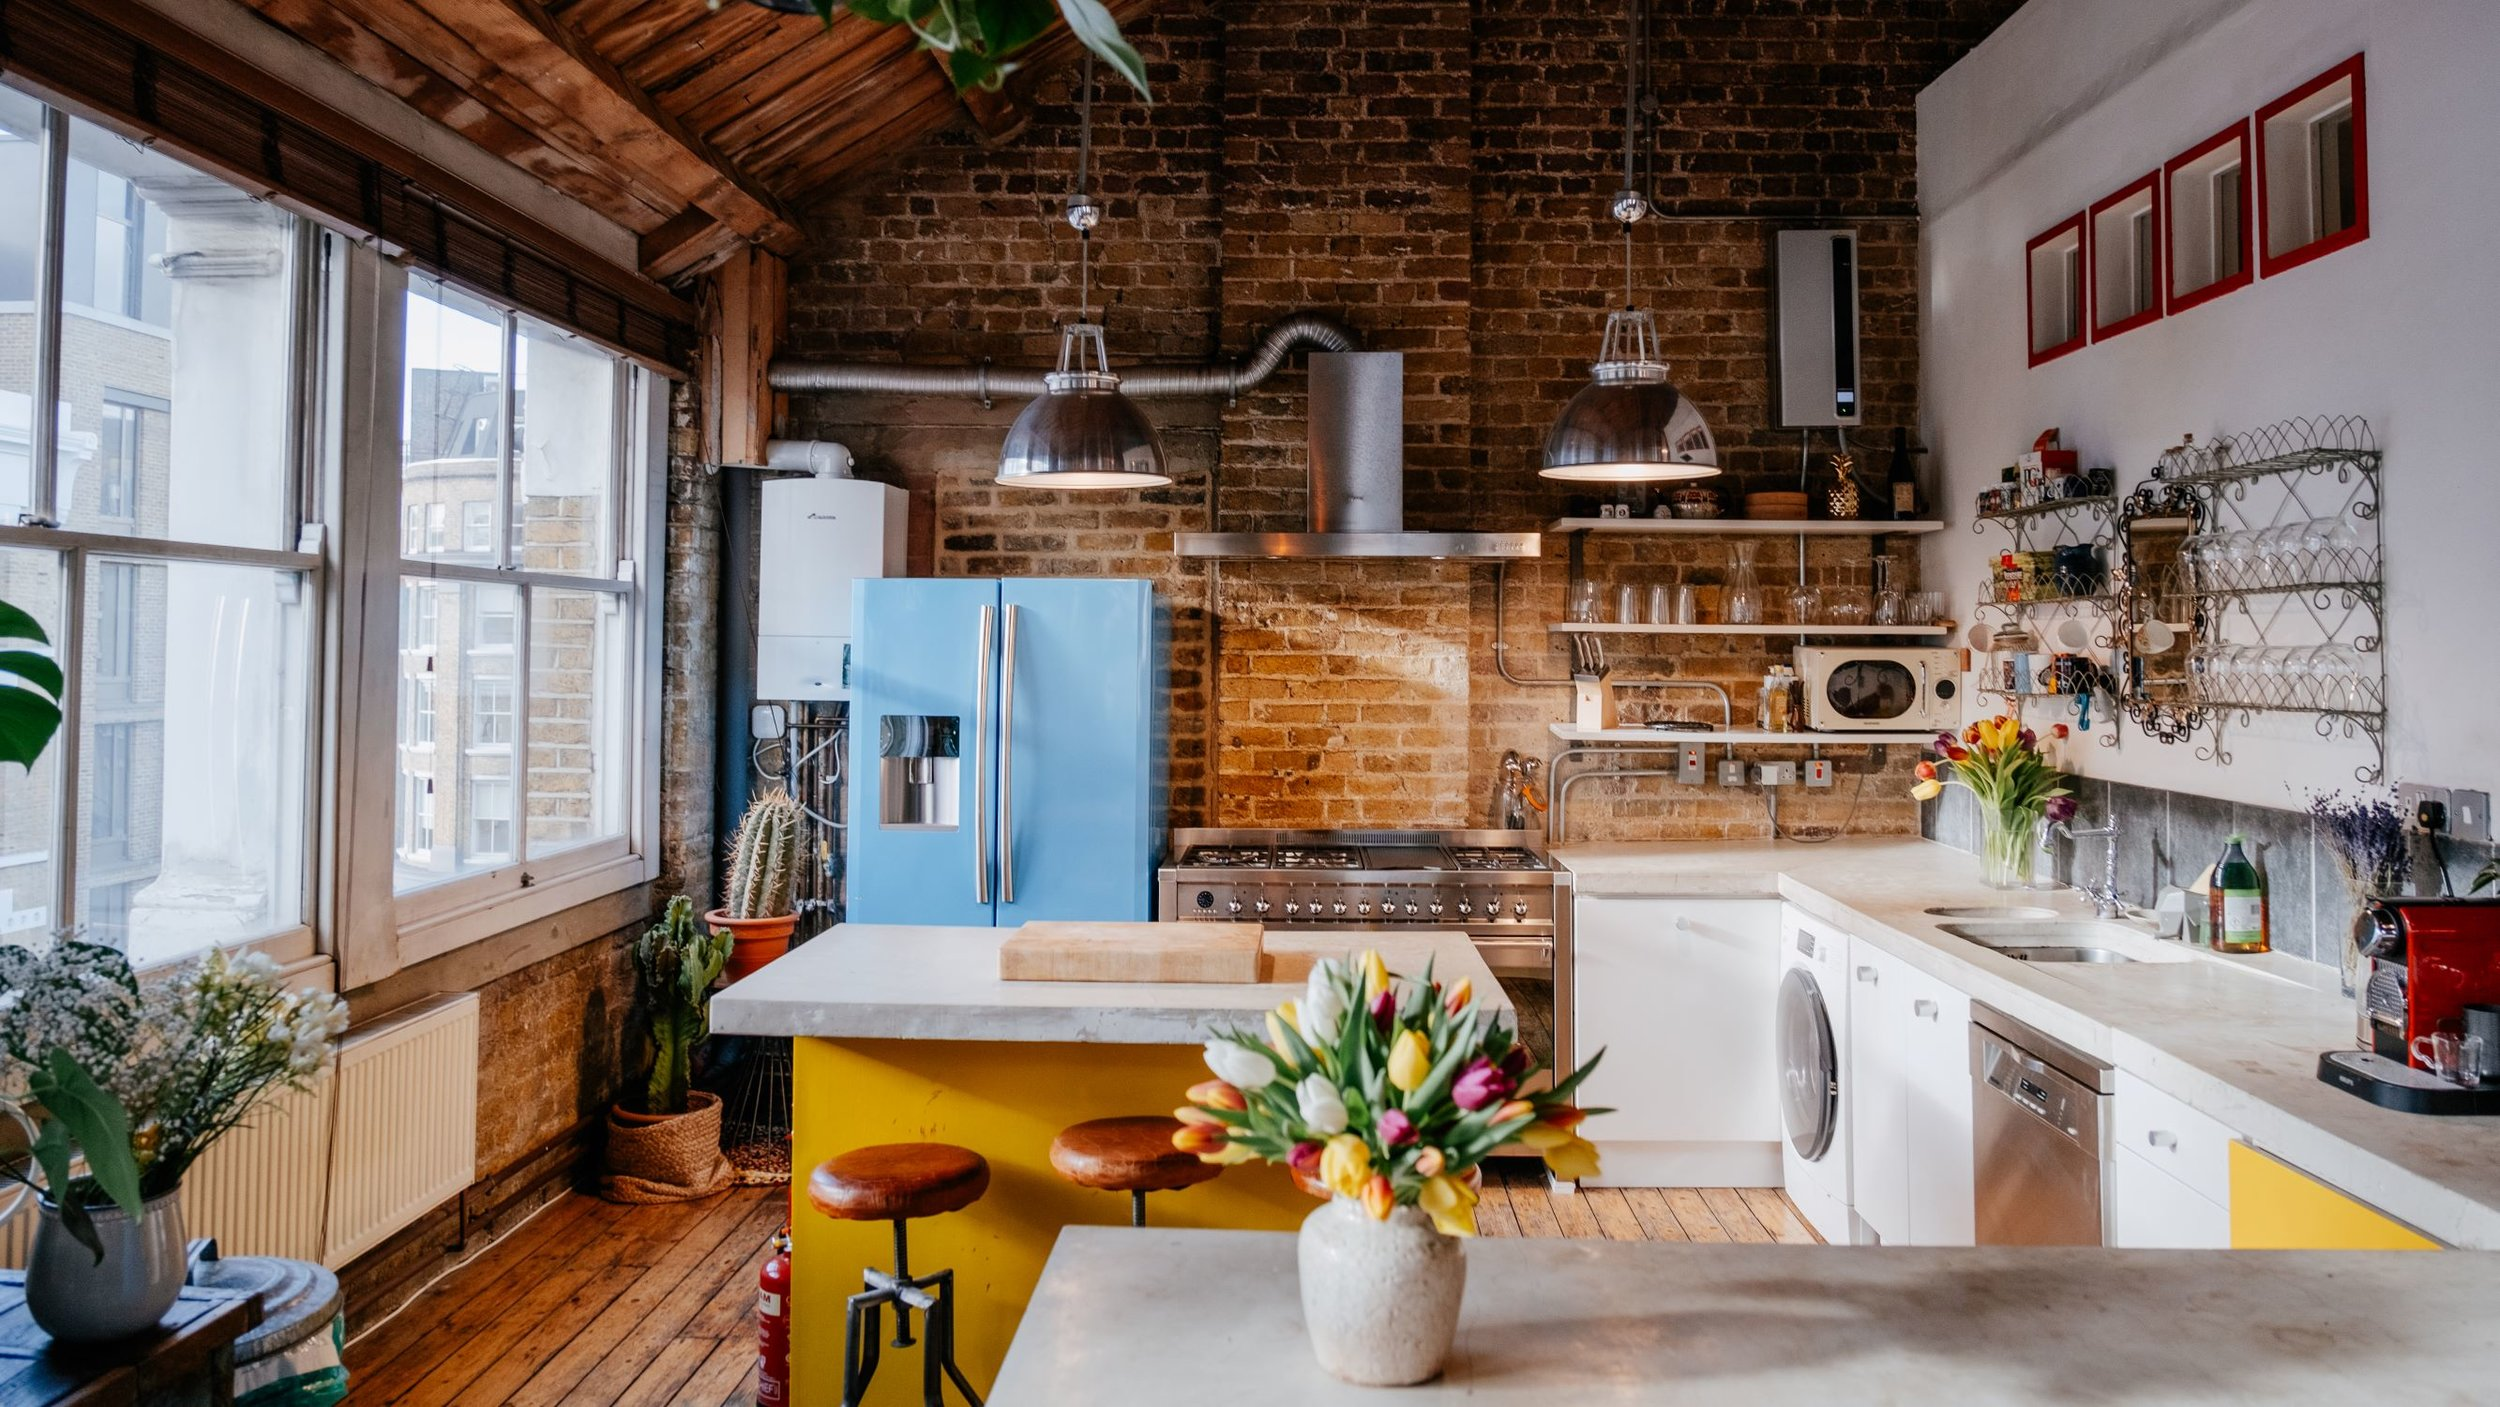 Shoreditch-Treehouse-Kitchen-Shot-Corperate-Hire.jpg